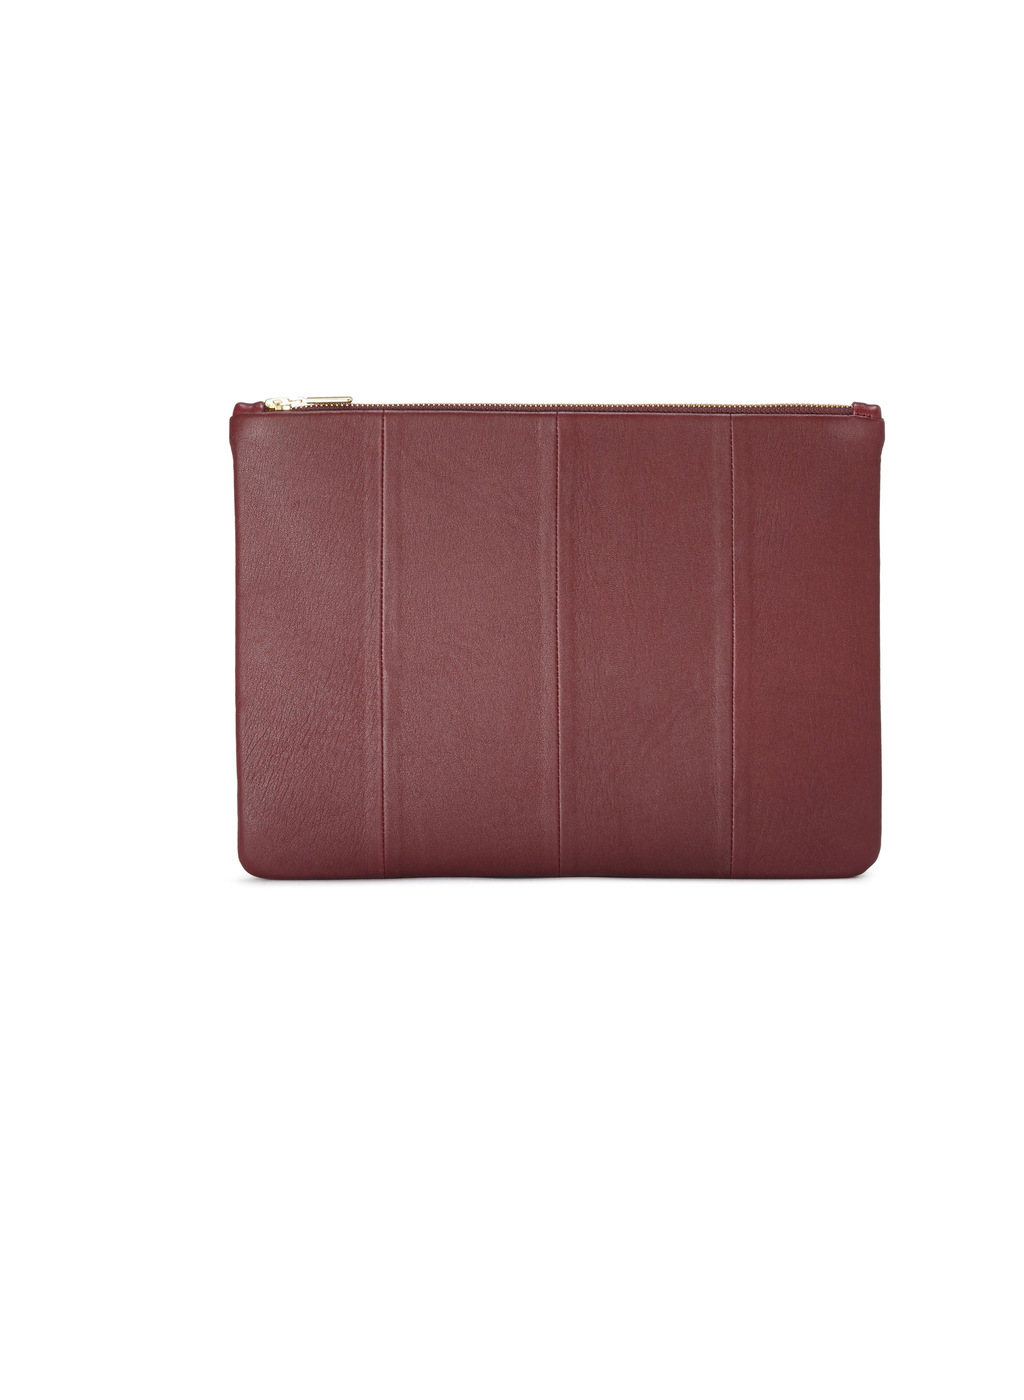 Womenswear Mercia Clutch Bag - predominant colour: burgundy; occasions: evening; type of pattern: standard; style: clutch; length: hand carry; size: standard; material: leather; pattern: plain; finish: plain; season: a/w 2016